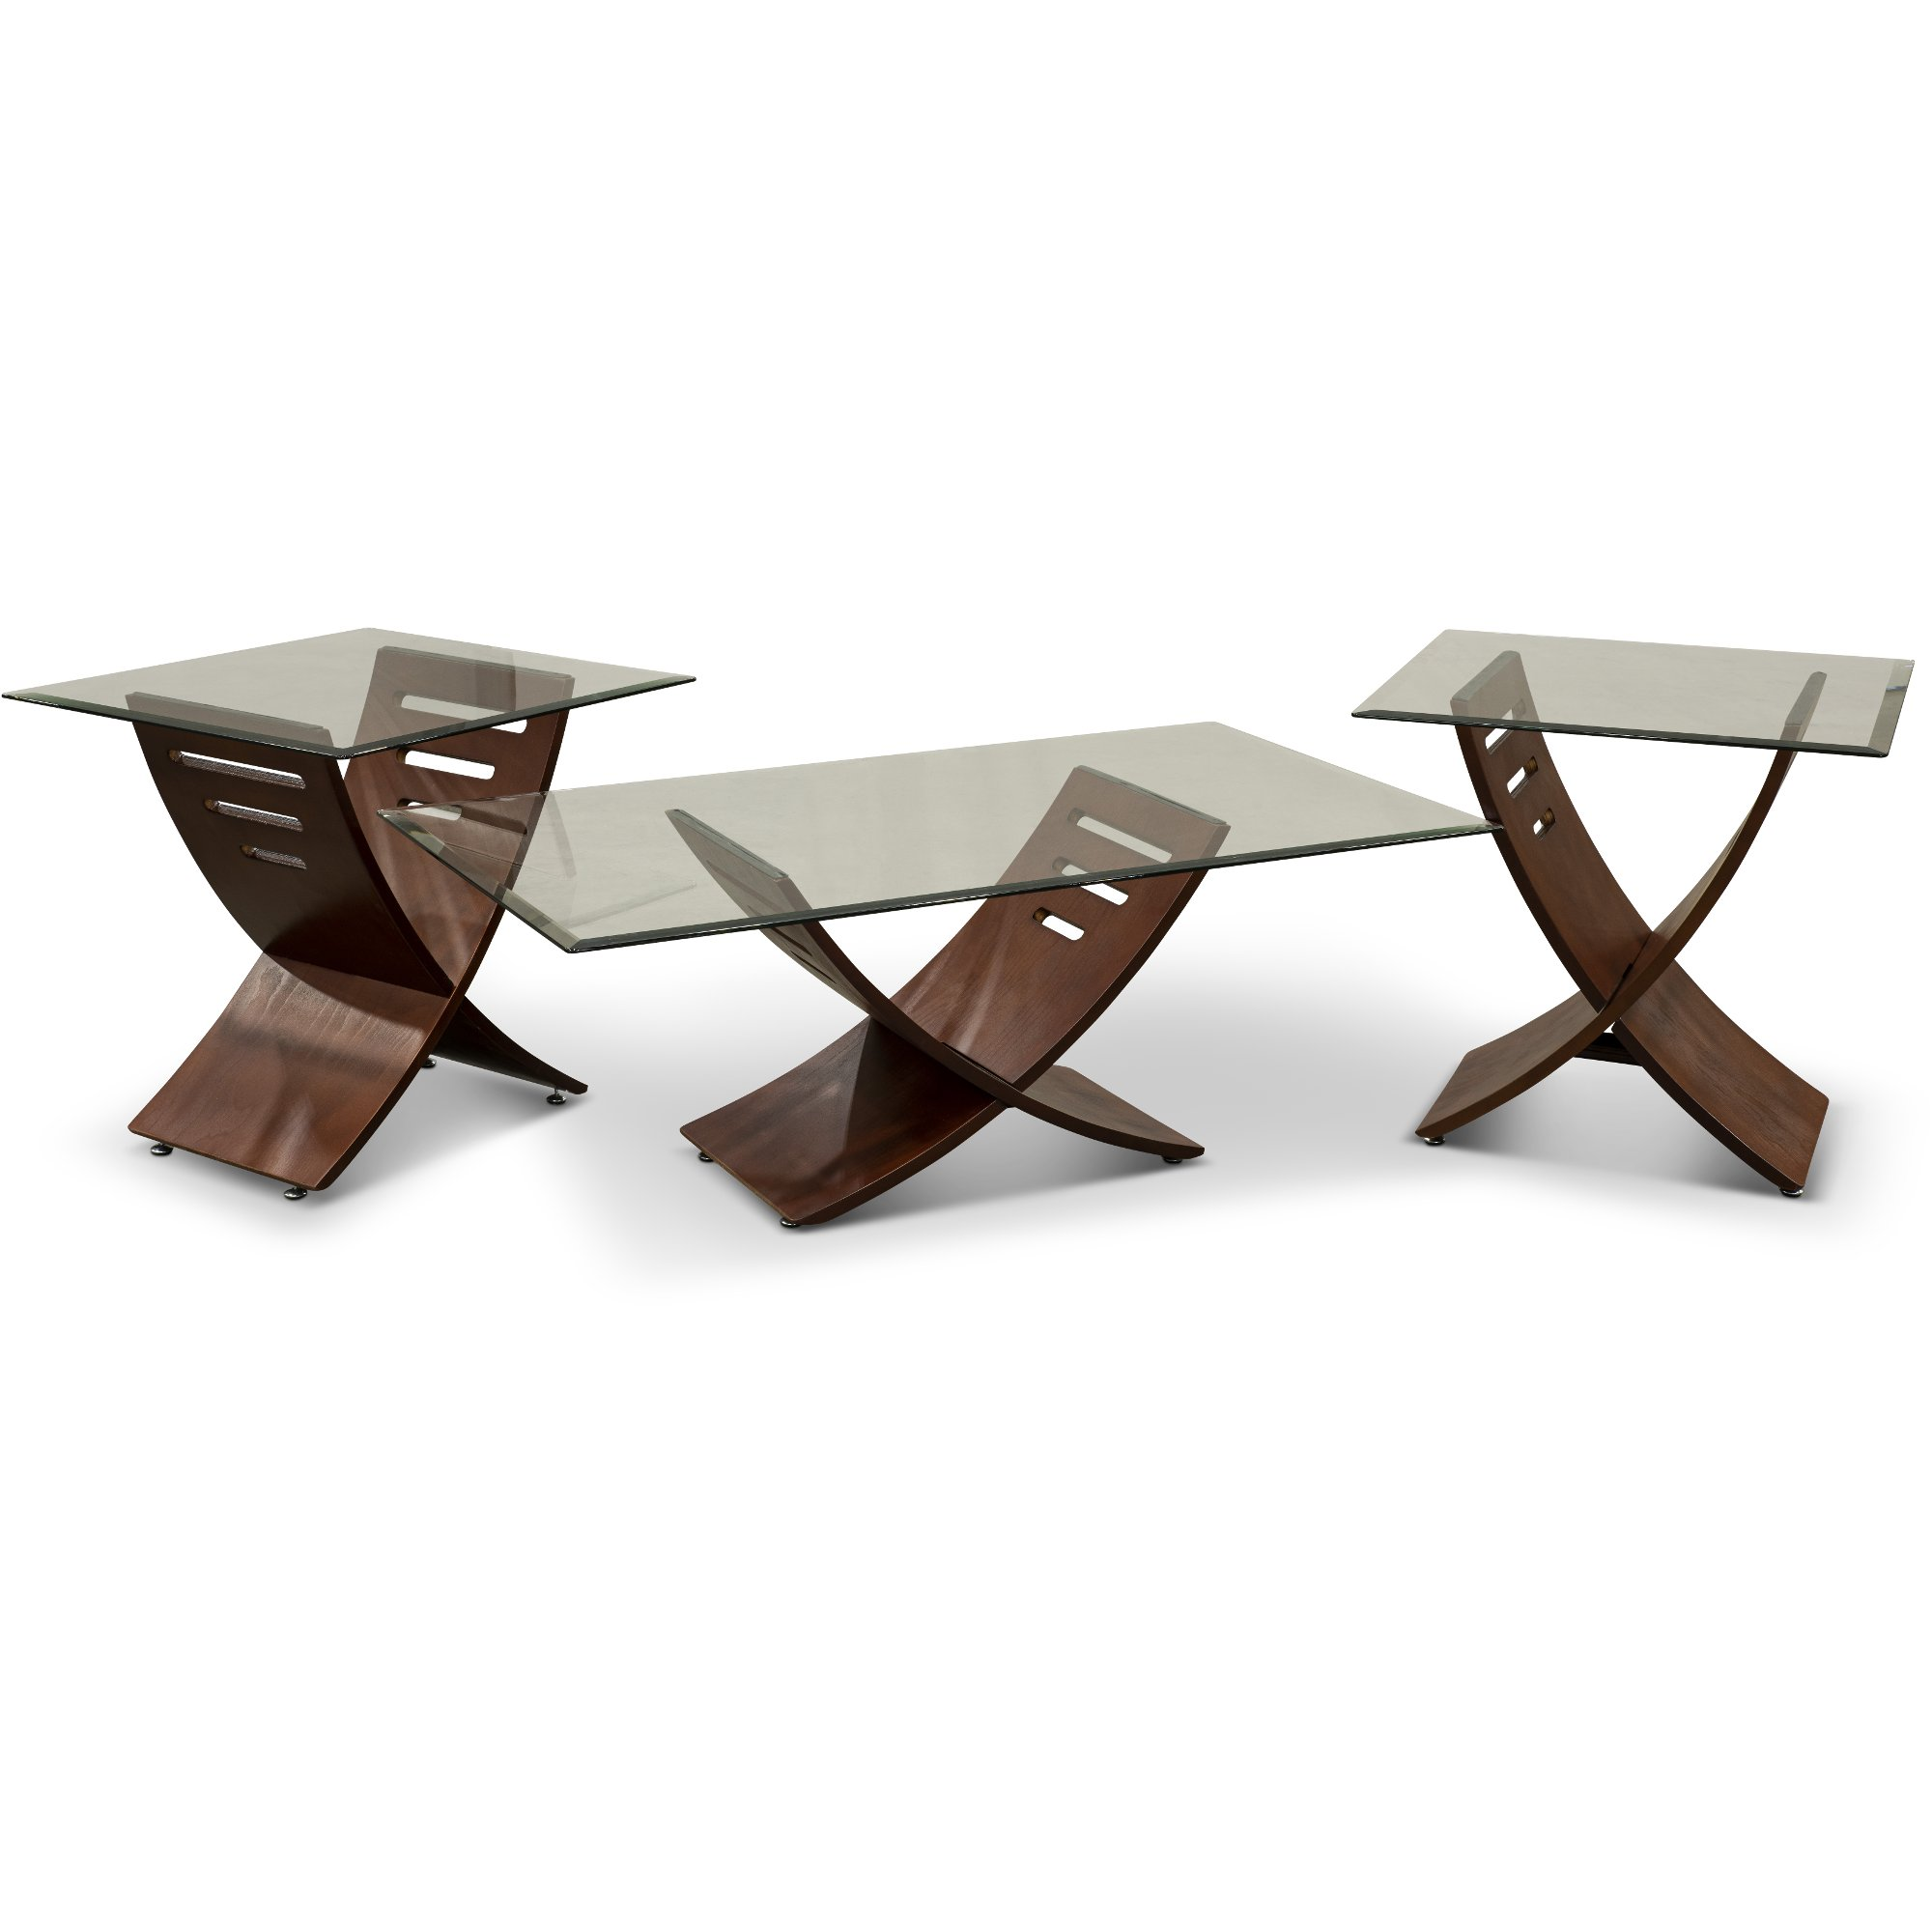 3 piece table set for living room light grey walls espresso brown and glass coffee rc willey furniture store